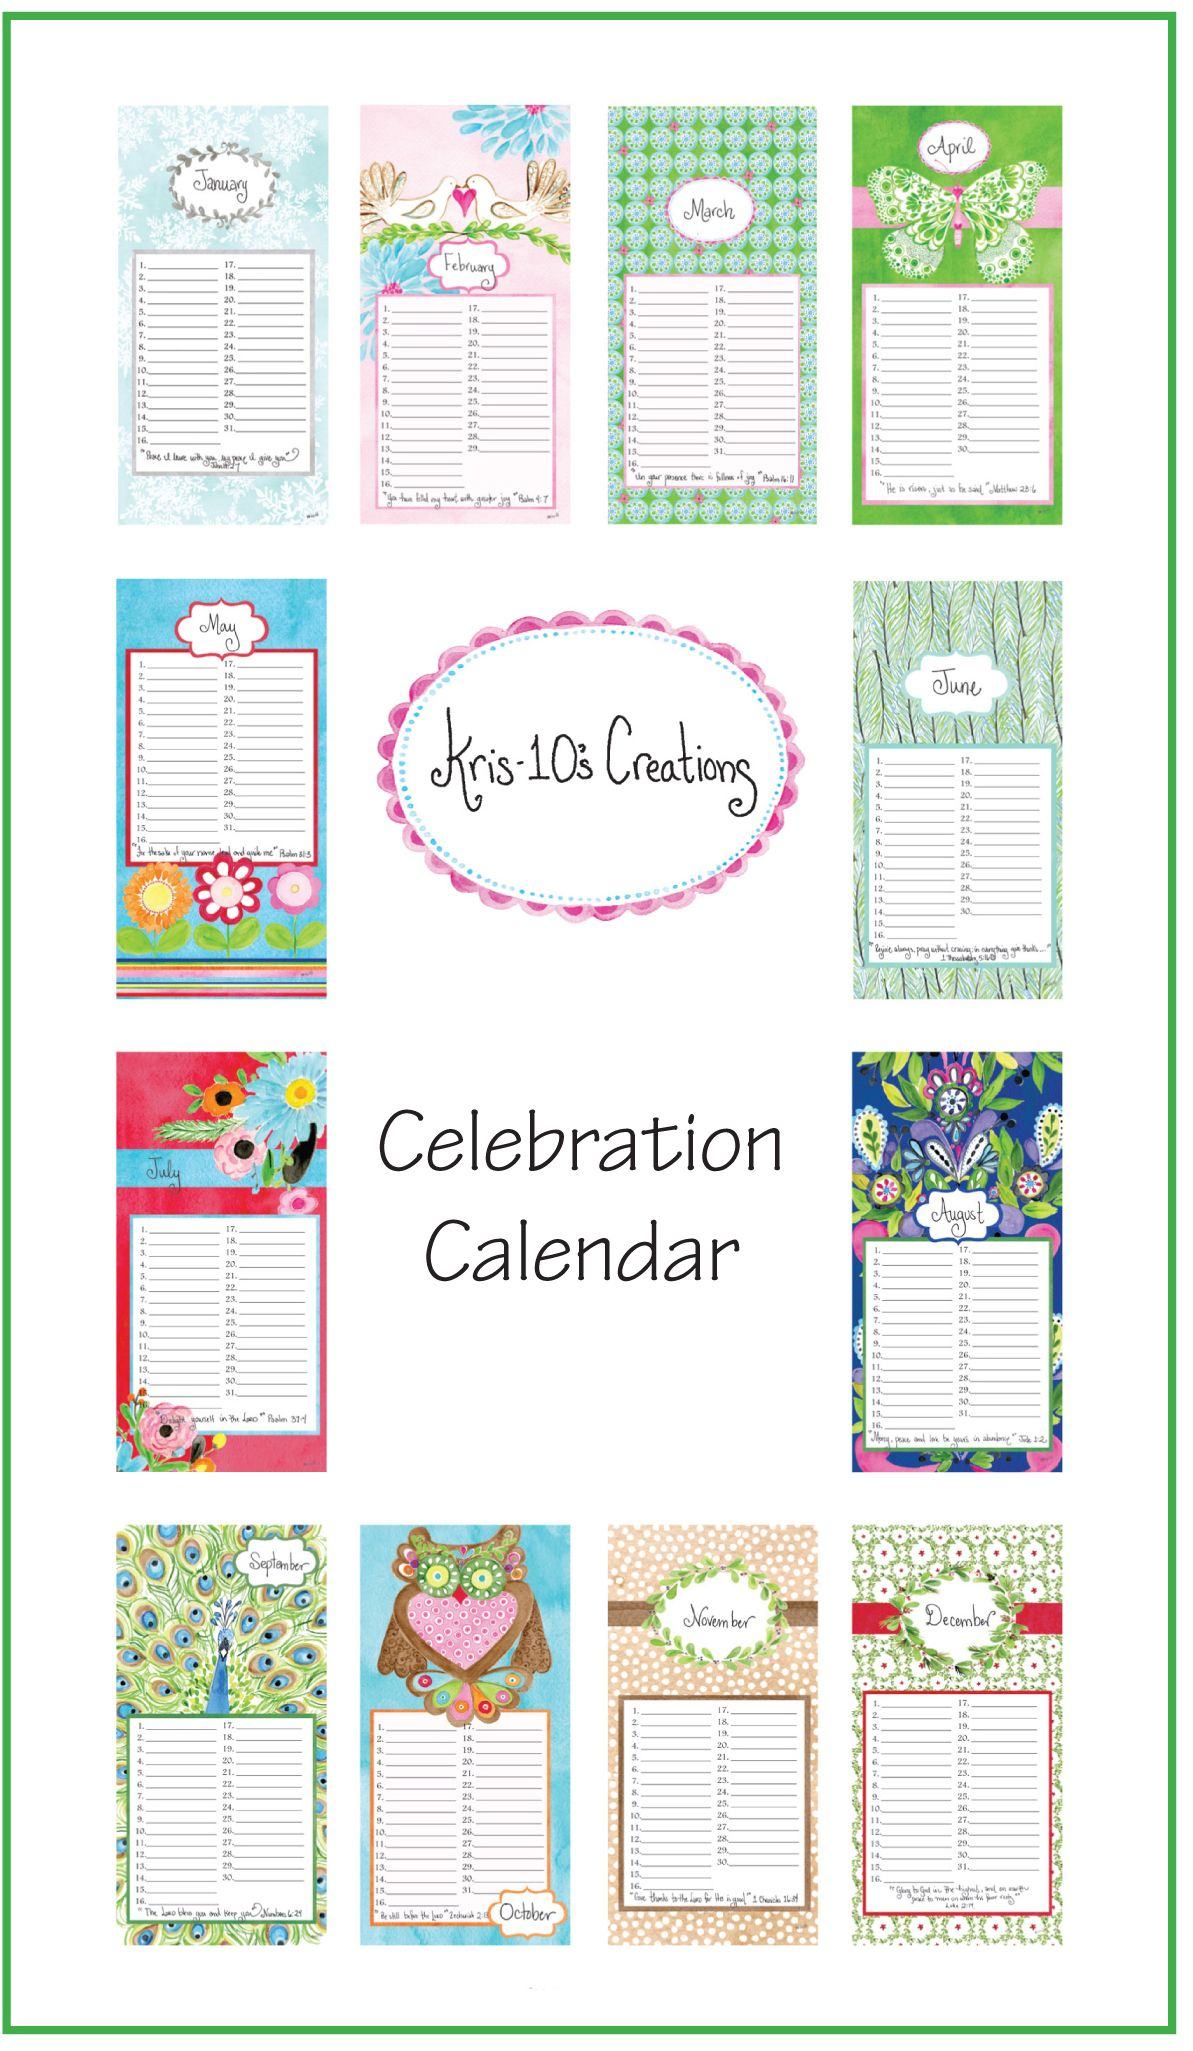 picture relating to Free Printable Perpetual Birthday Calendar Template titled Calendar Template Gallery perpetual birthday calendar